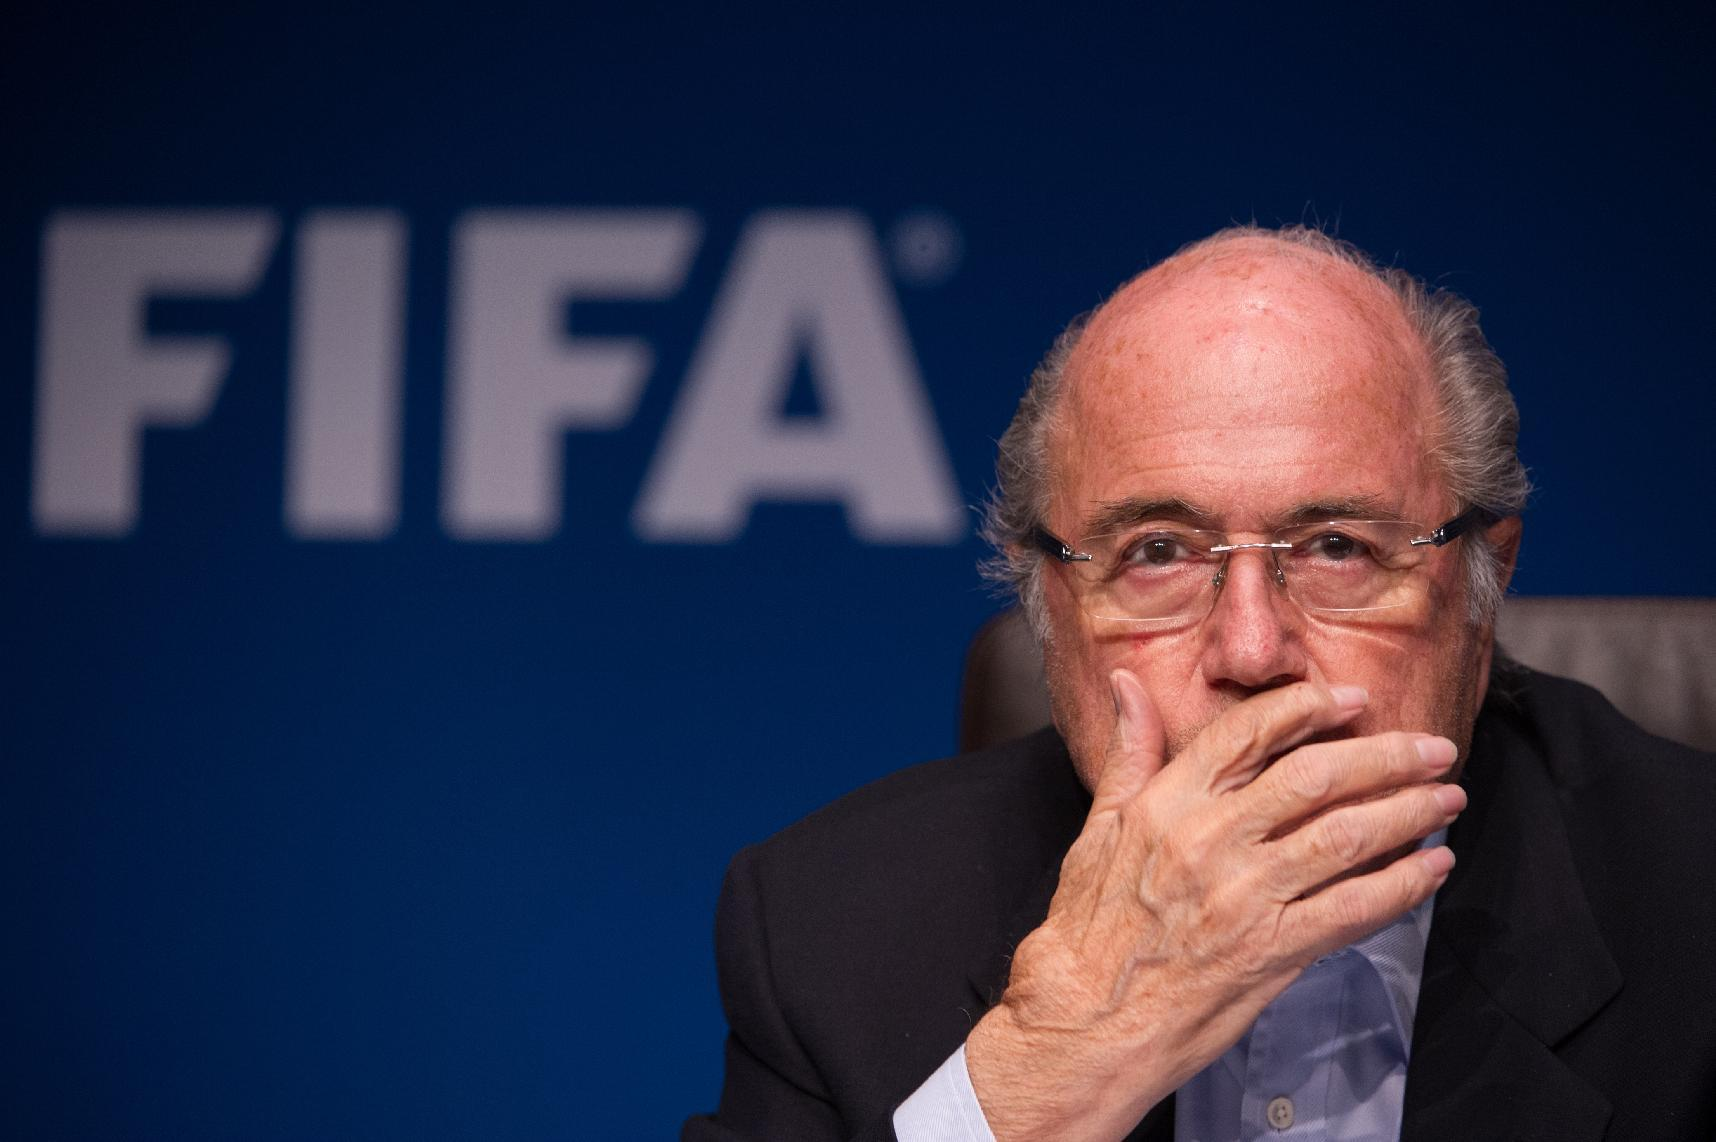 FIFA to decide Qatar World Cup dates in March